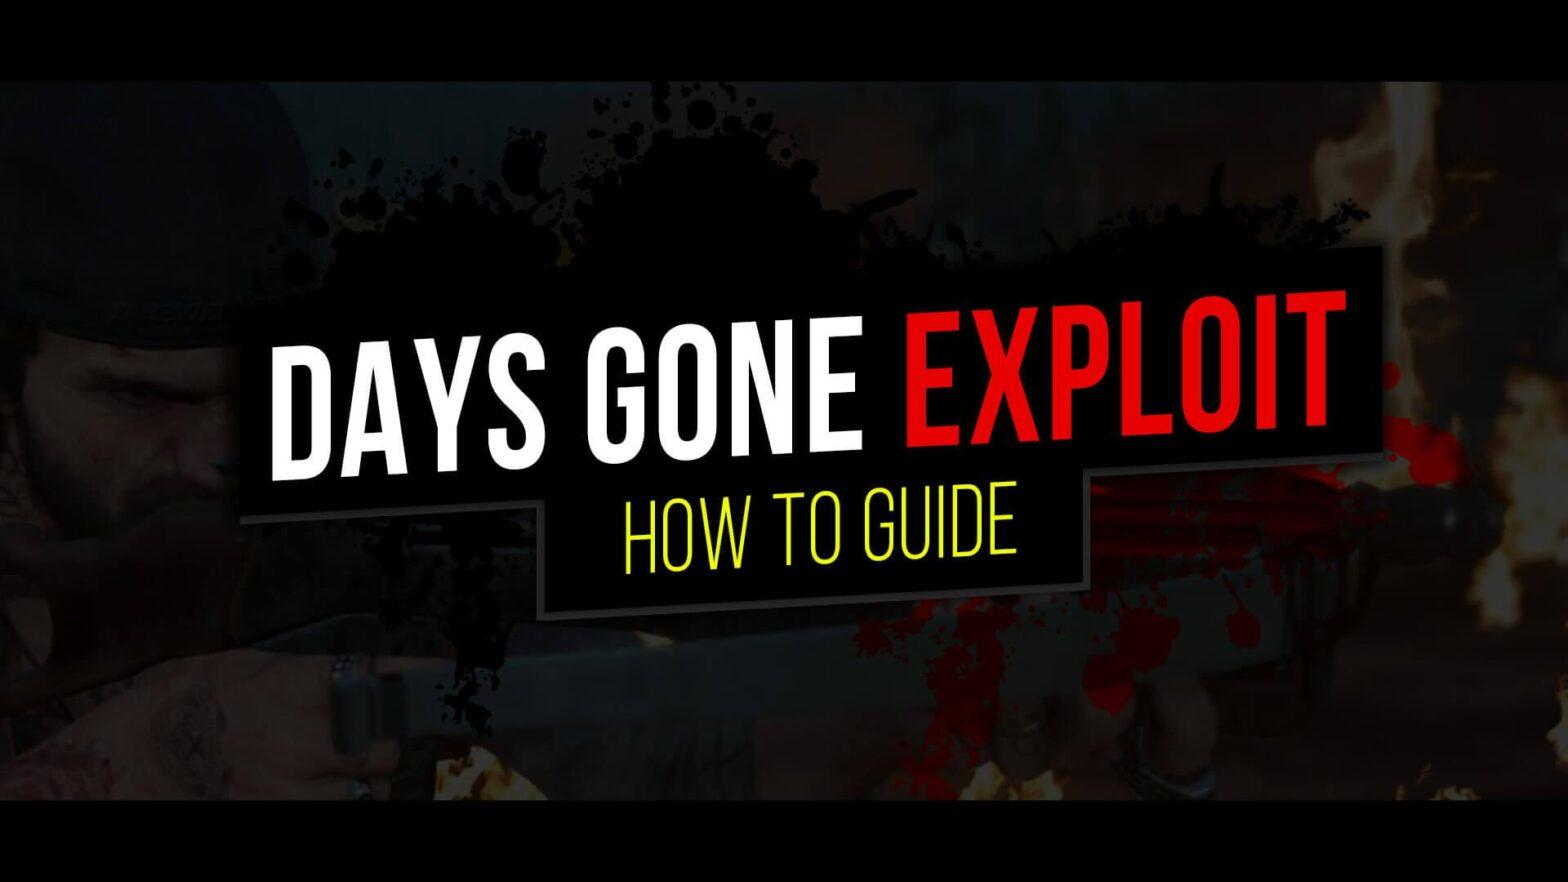 Days Gone Exploit